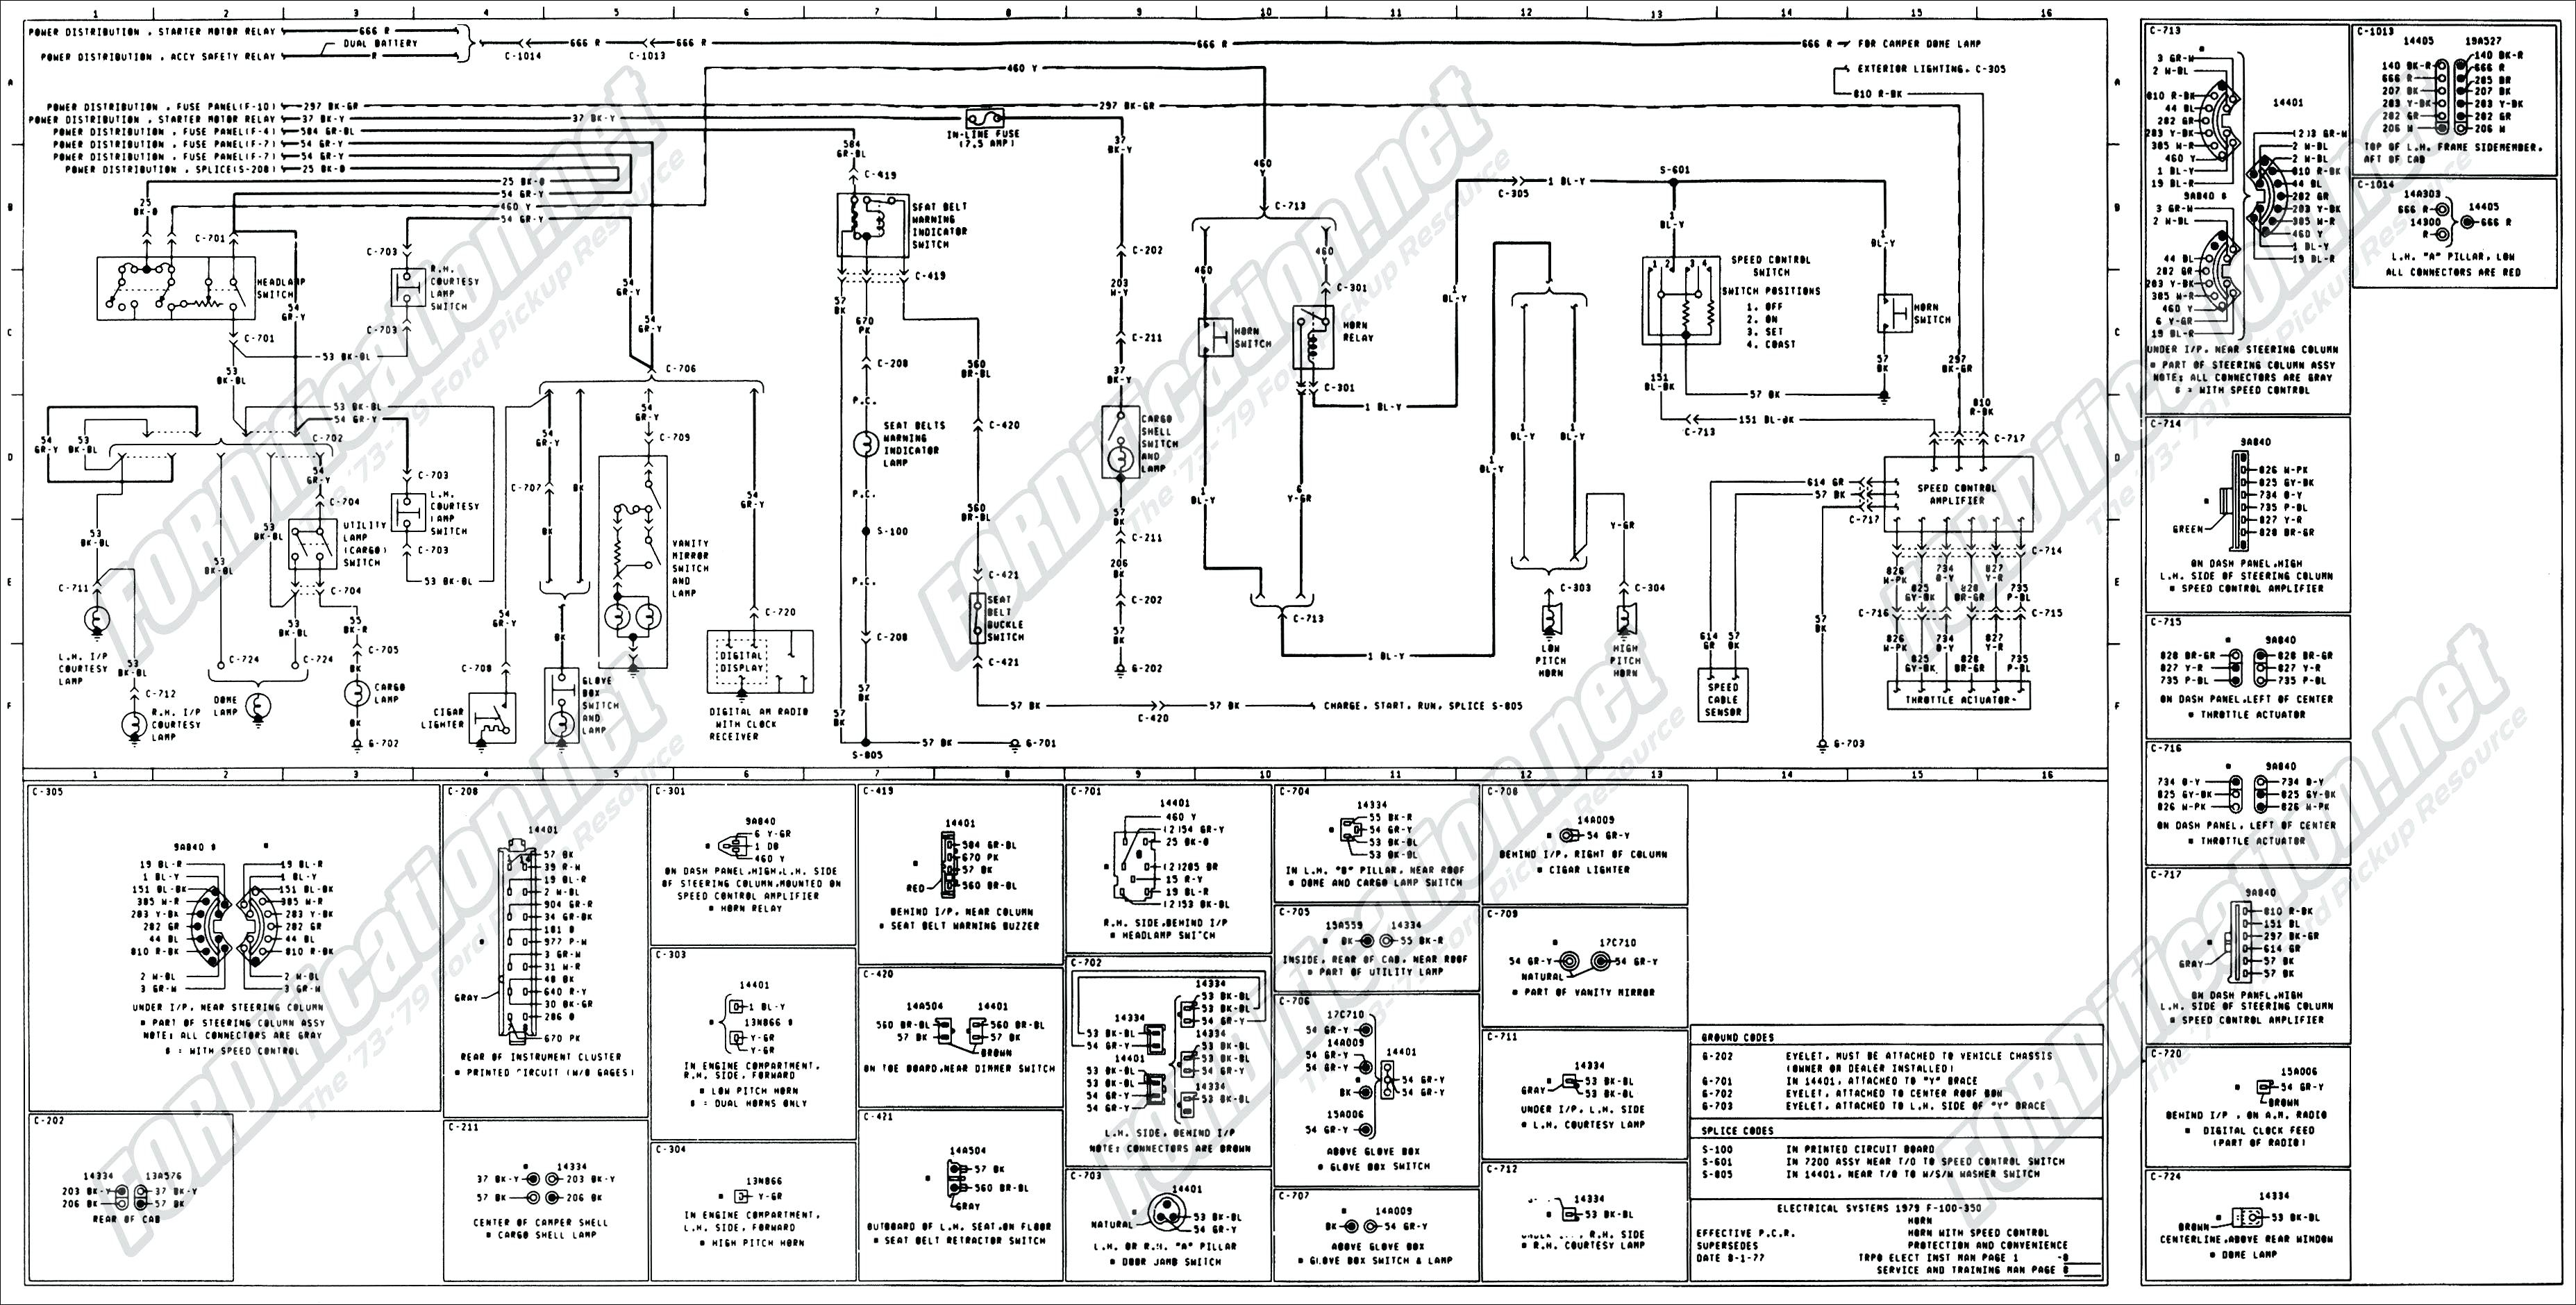 [DIAGRAM] Ford Truck Radio Wiring Diagram For A 1995 Ford